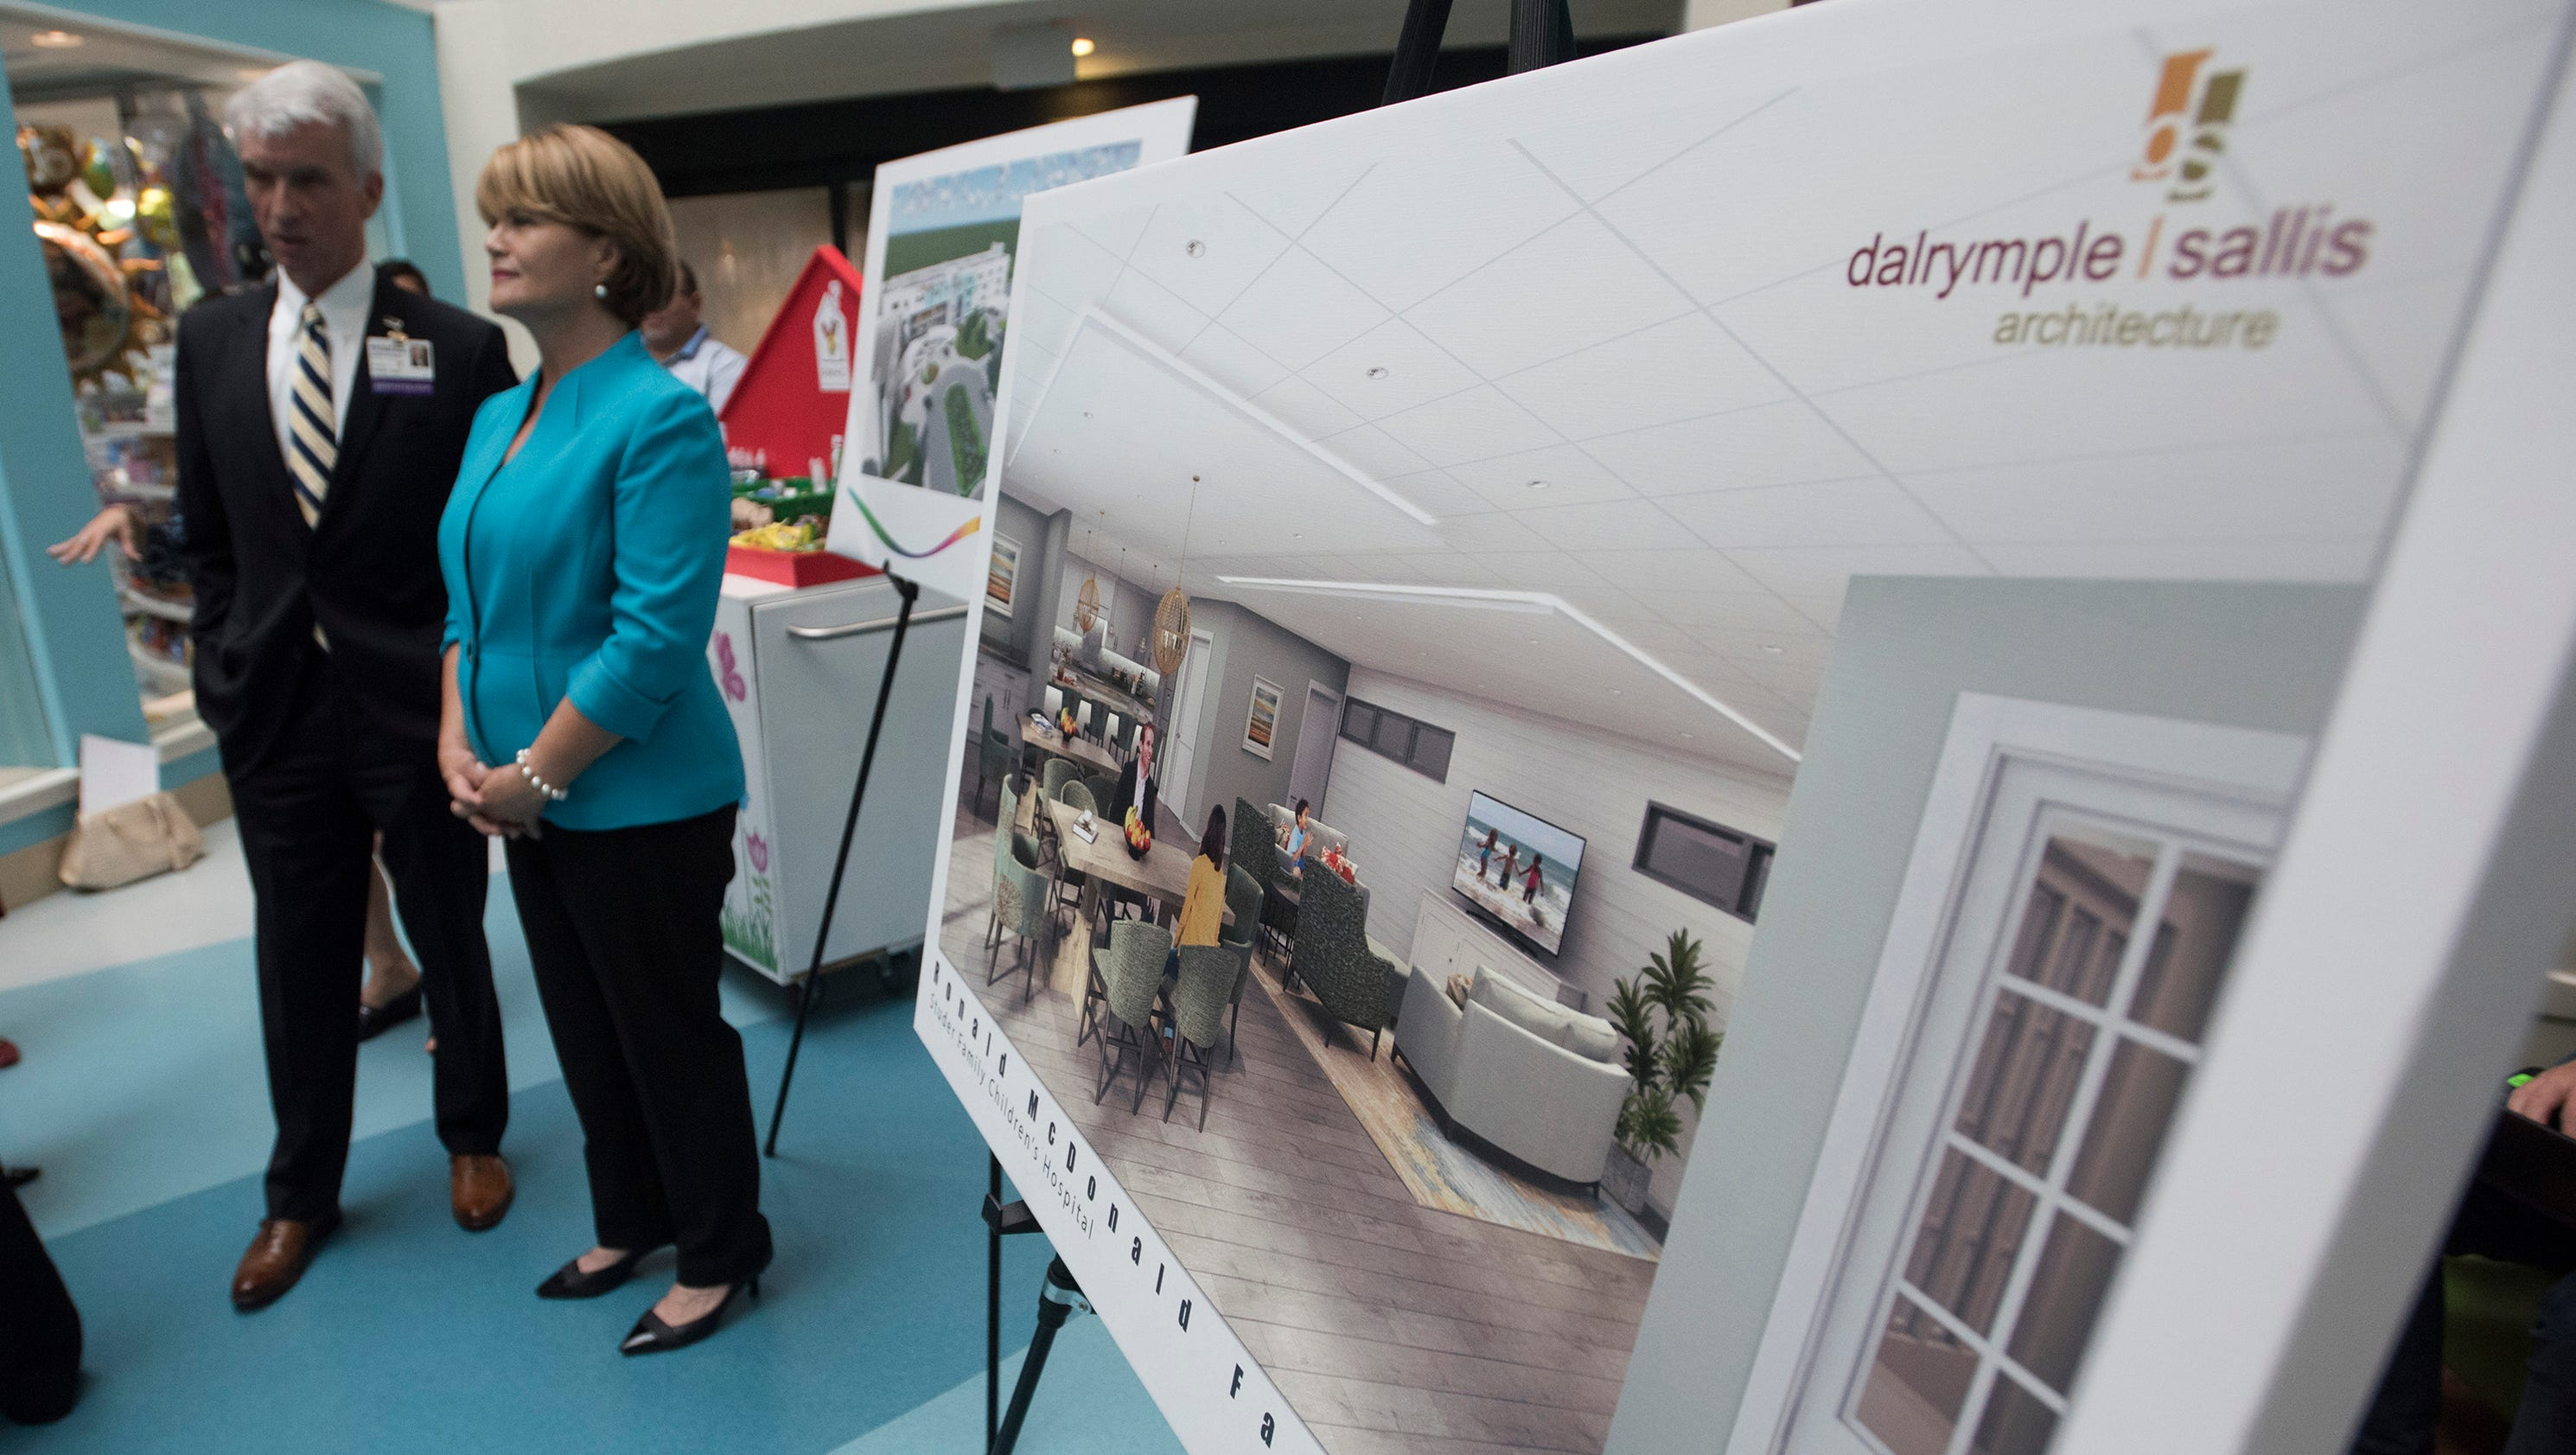 New ronald mcdonald family room planned for sacred heart for Ronald mcdonald family room